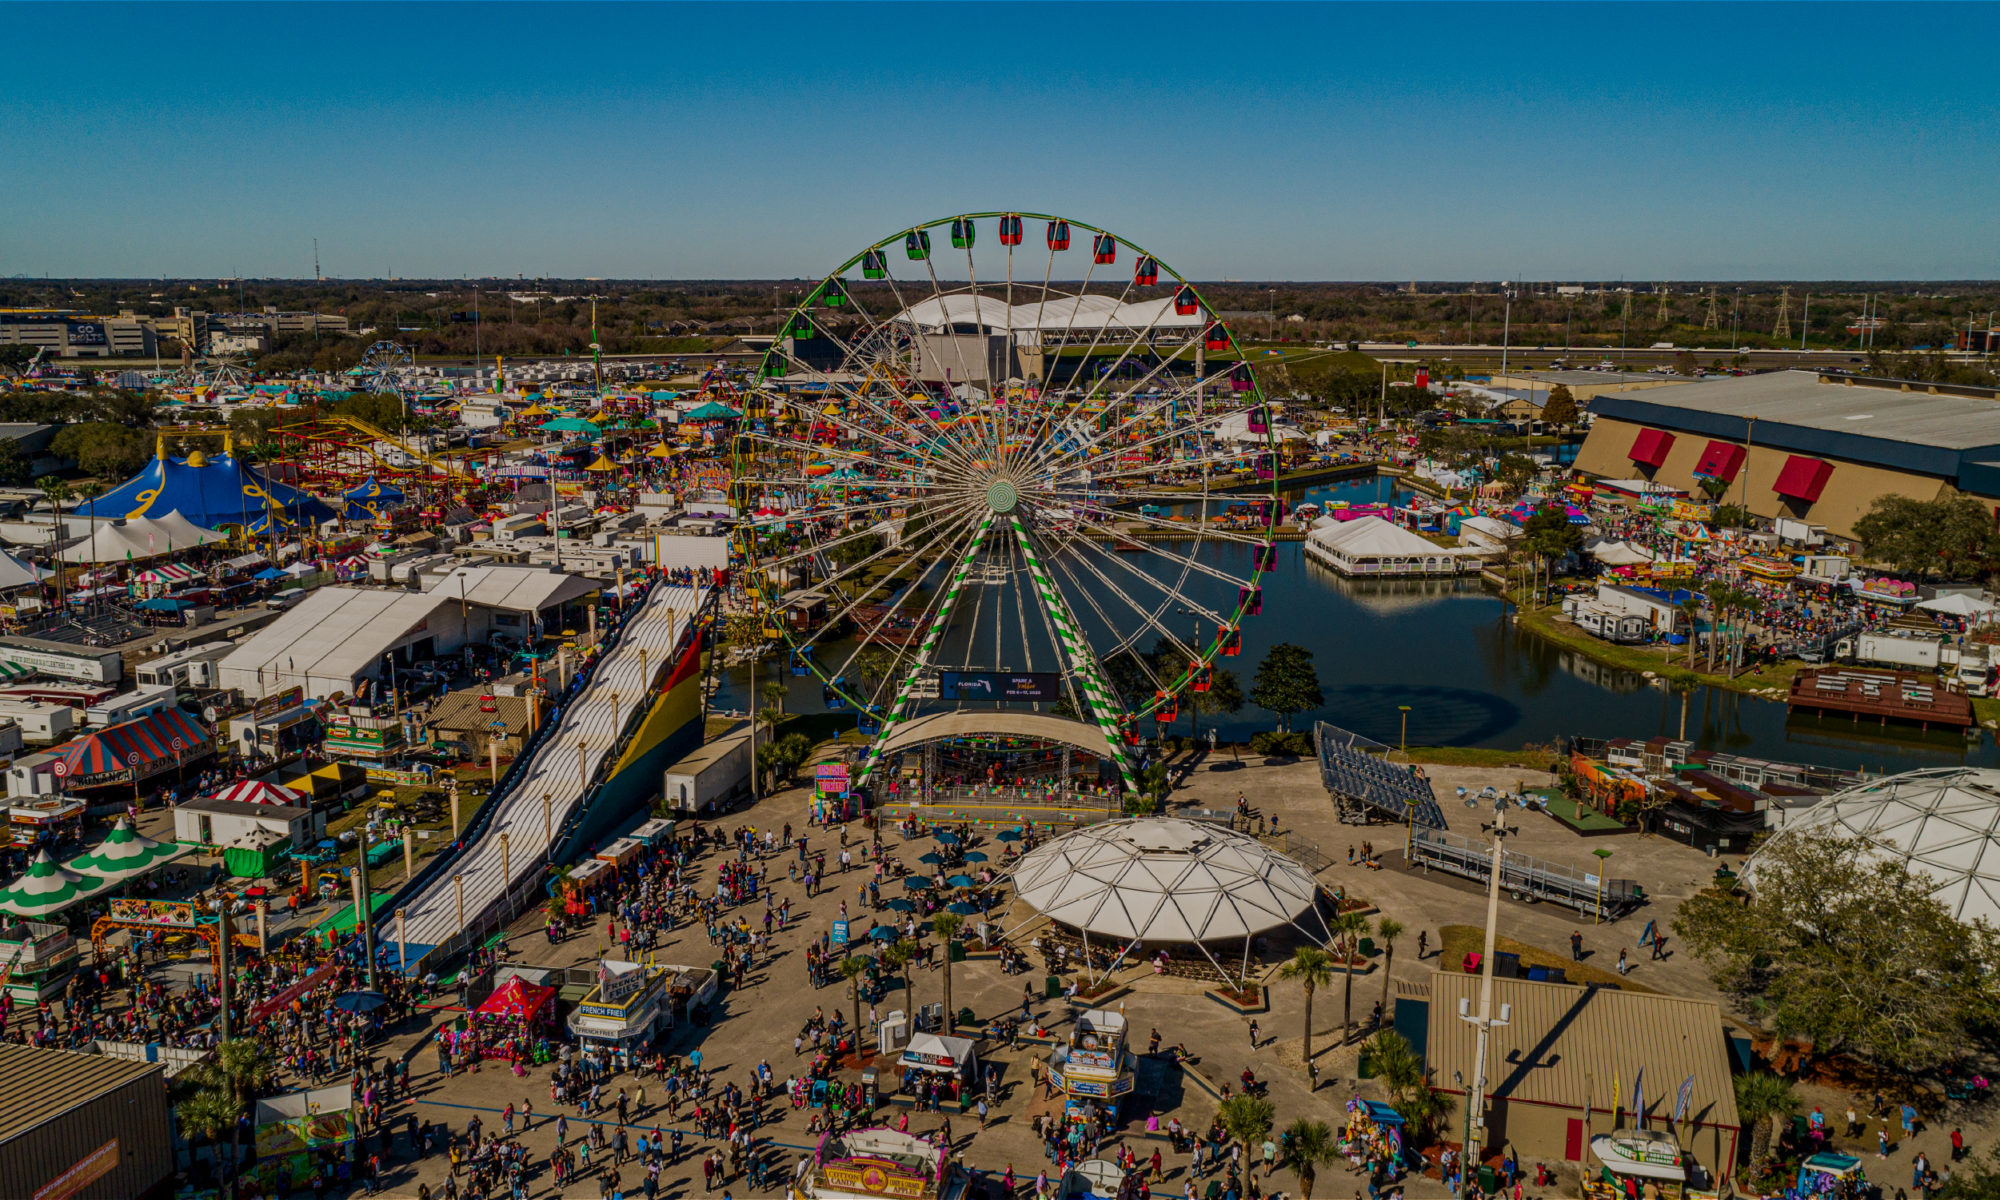 Florida State Fairgrounds: Find Your Fun In The Sun! For Florida State Fairgrounds Events 2021